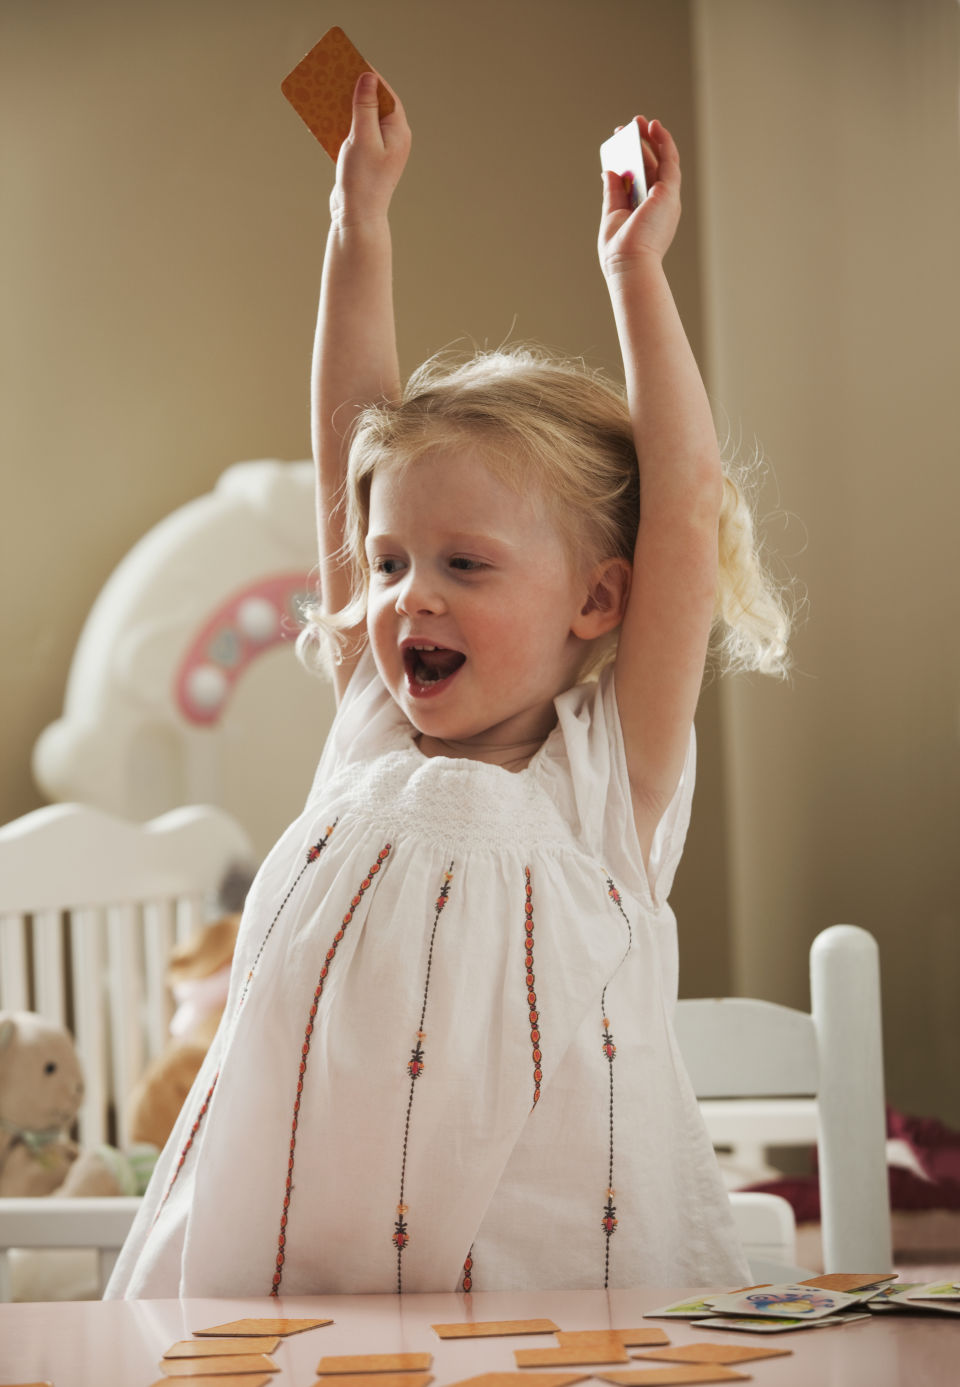 Girl throwing arms up excited